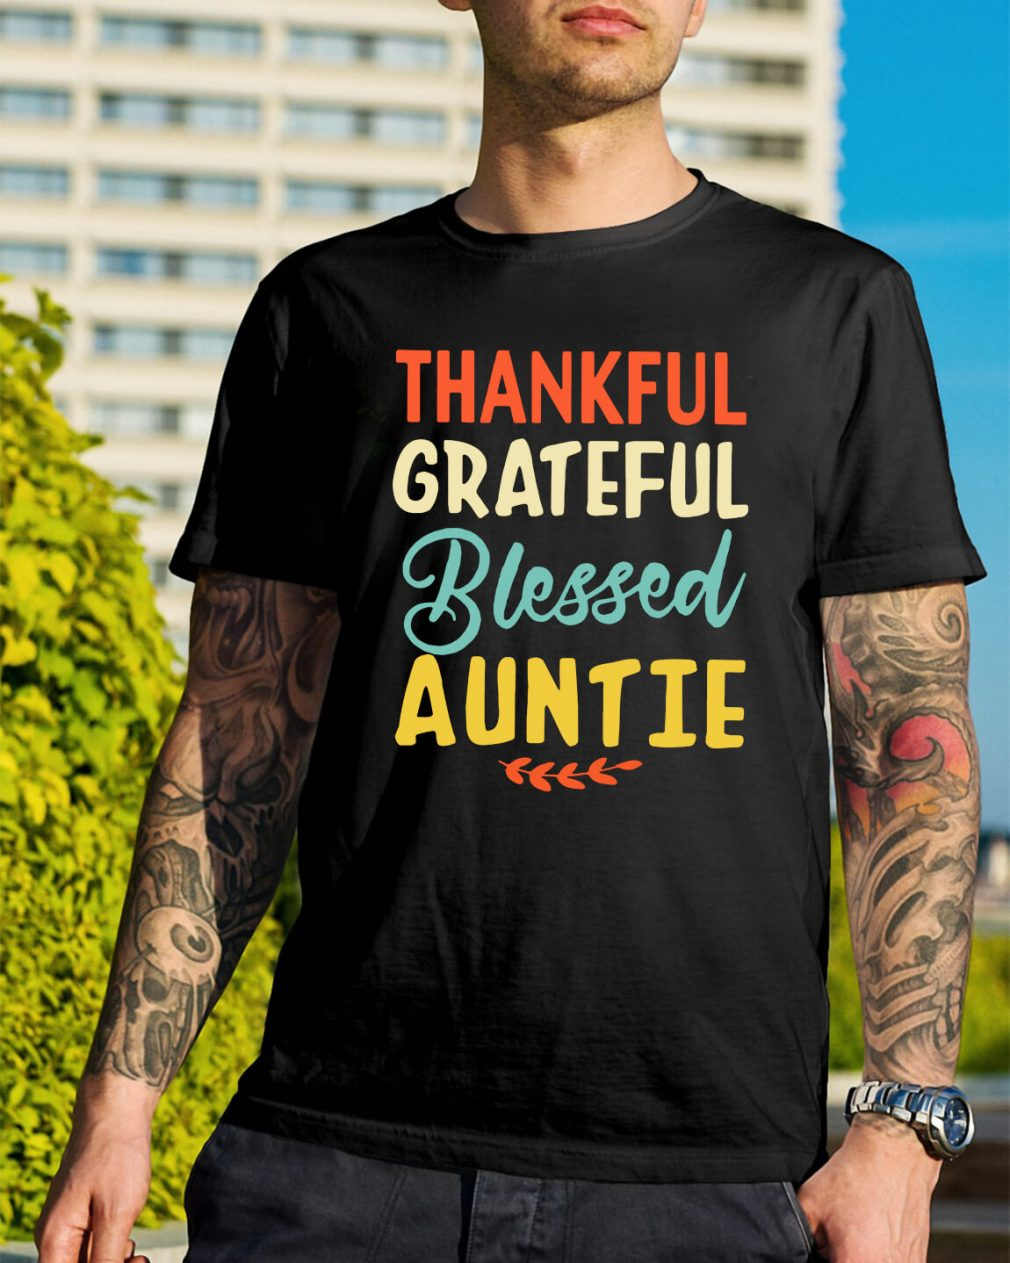 Thankful grateful blessed auntie shirt